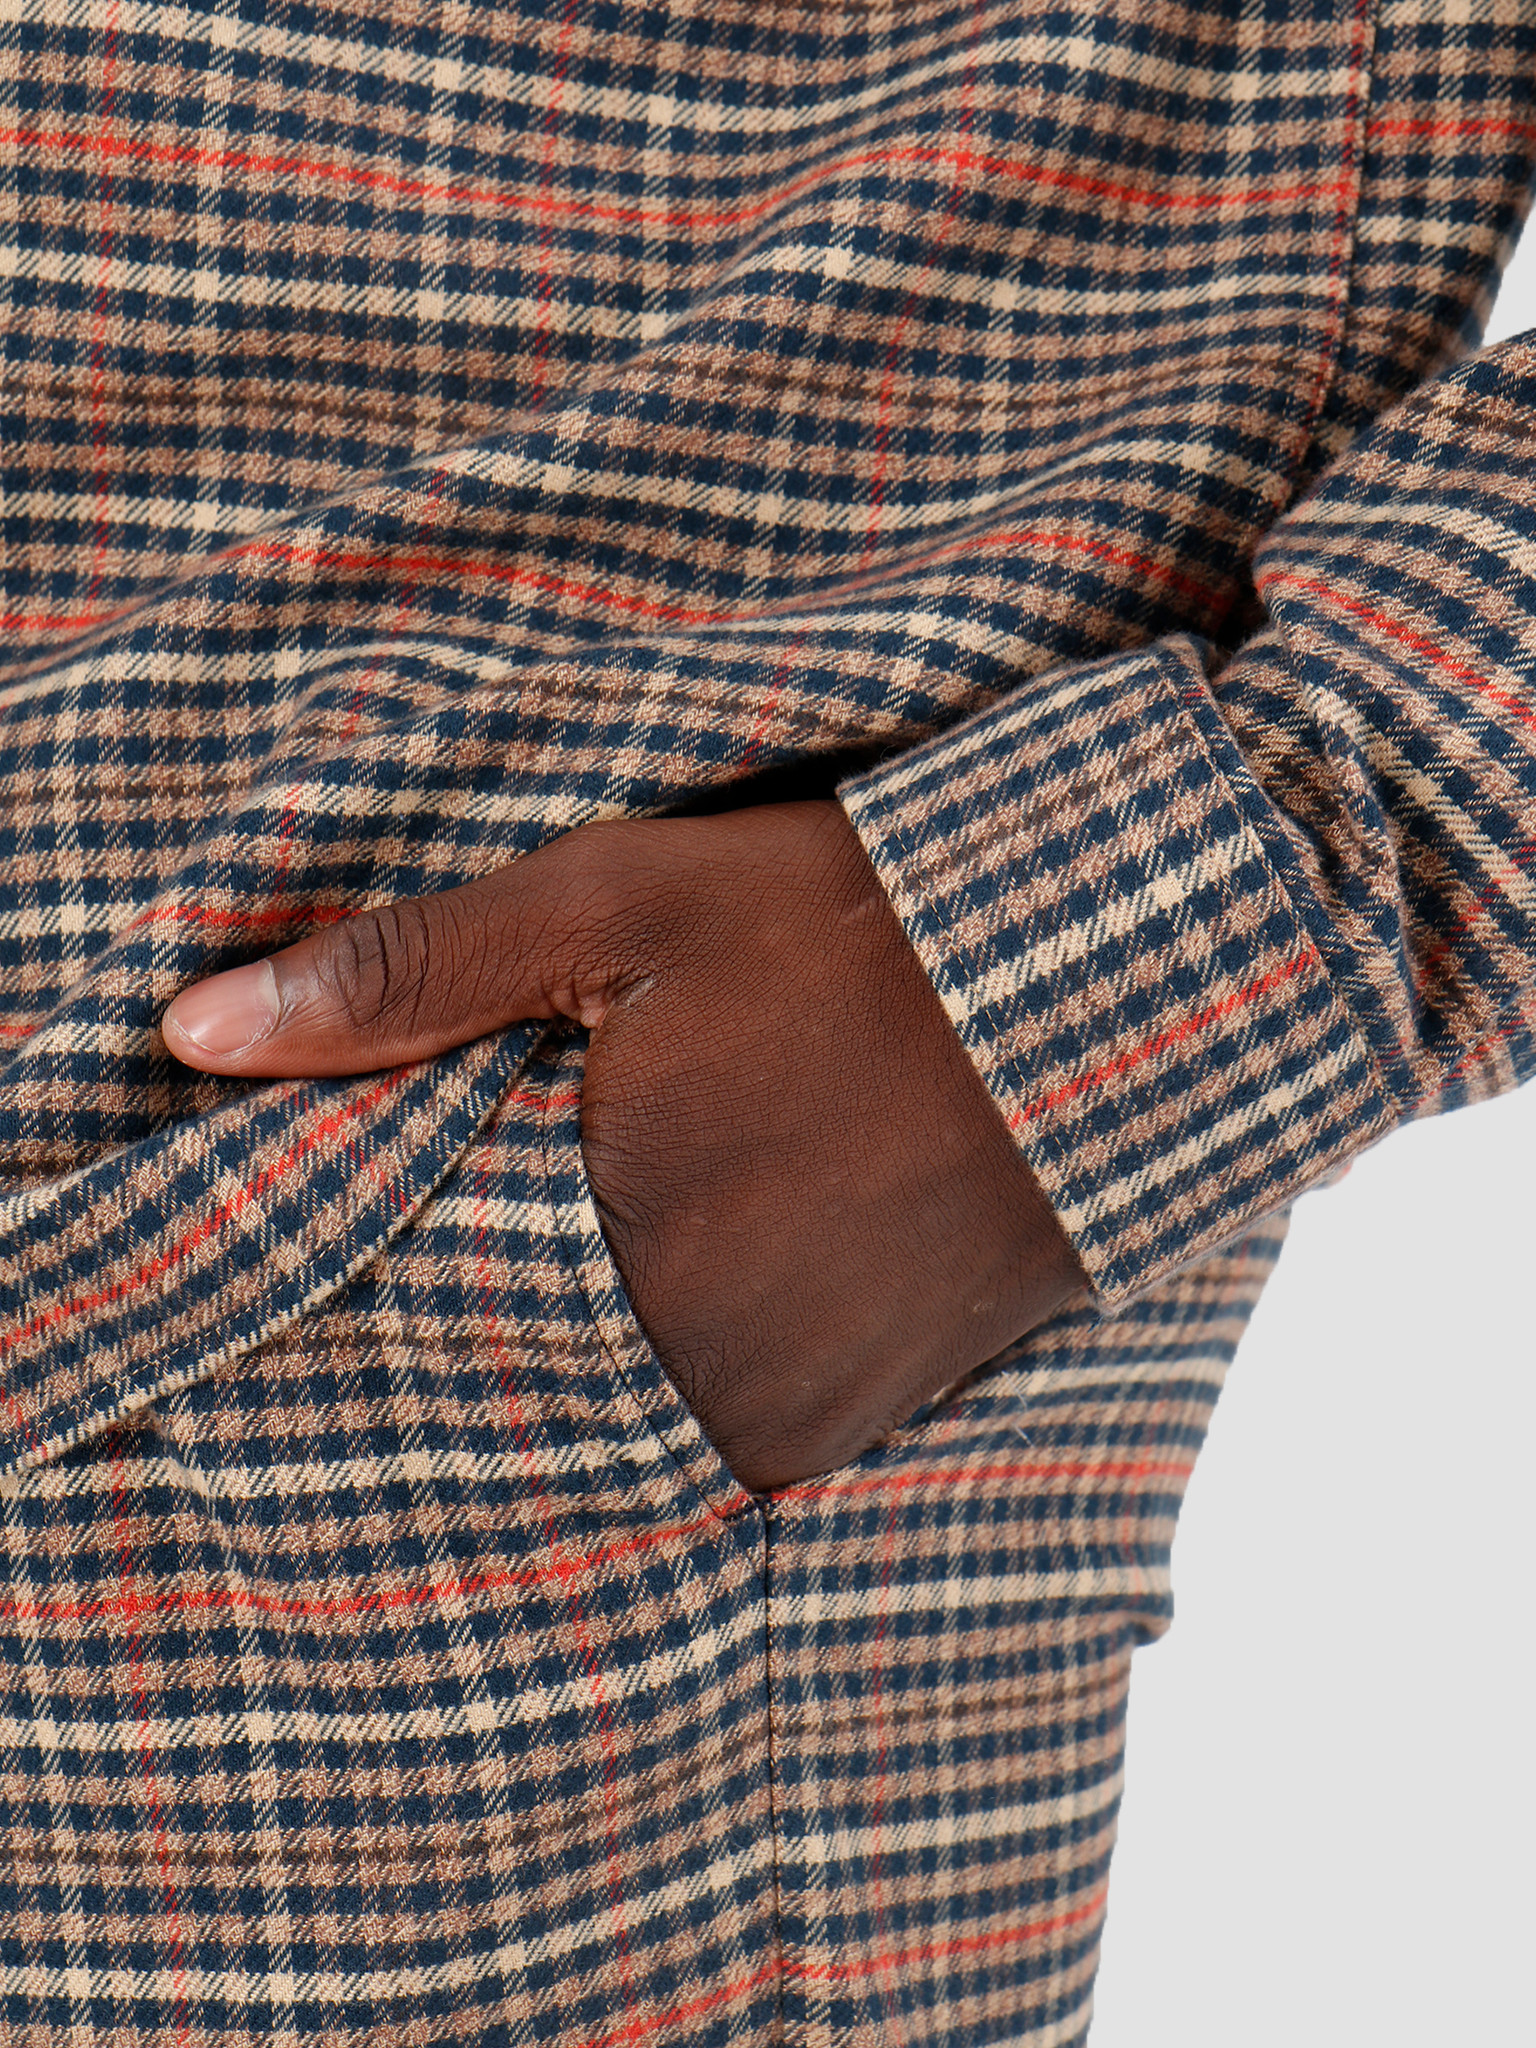 Libertine Libertine Libertine Libertine Plant Trousers Twill Red Check 1714